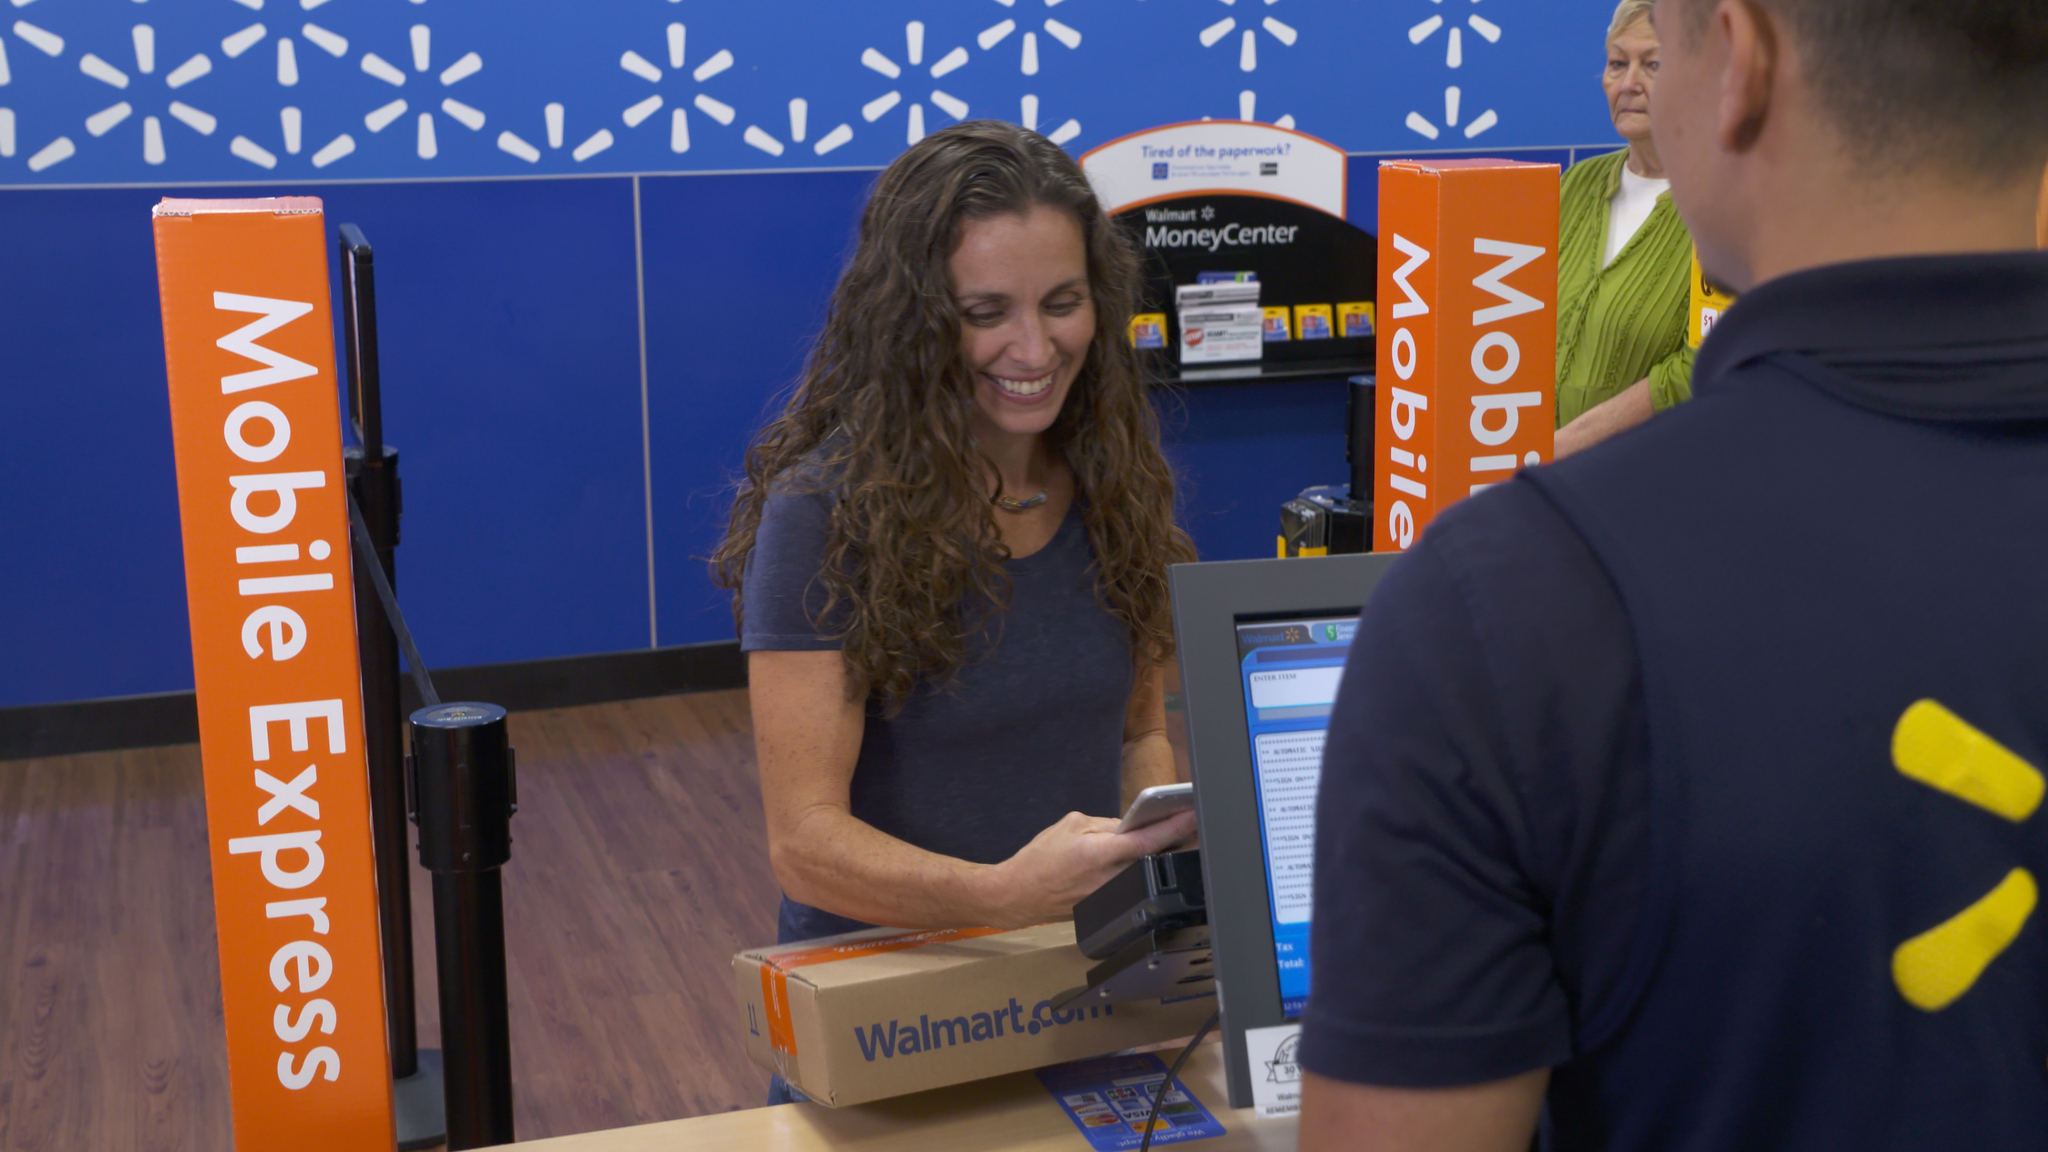 Walmart is making new moves to speed up the return process for online purchases. (Walmart)